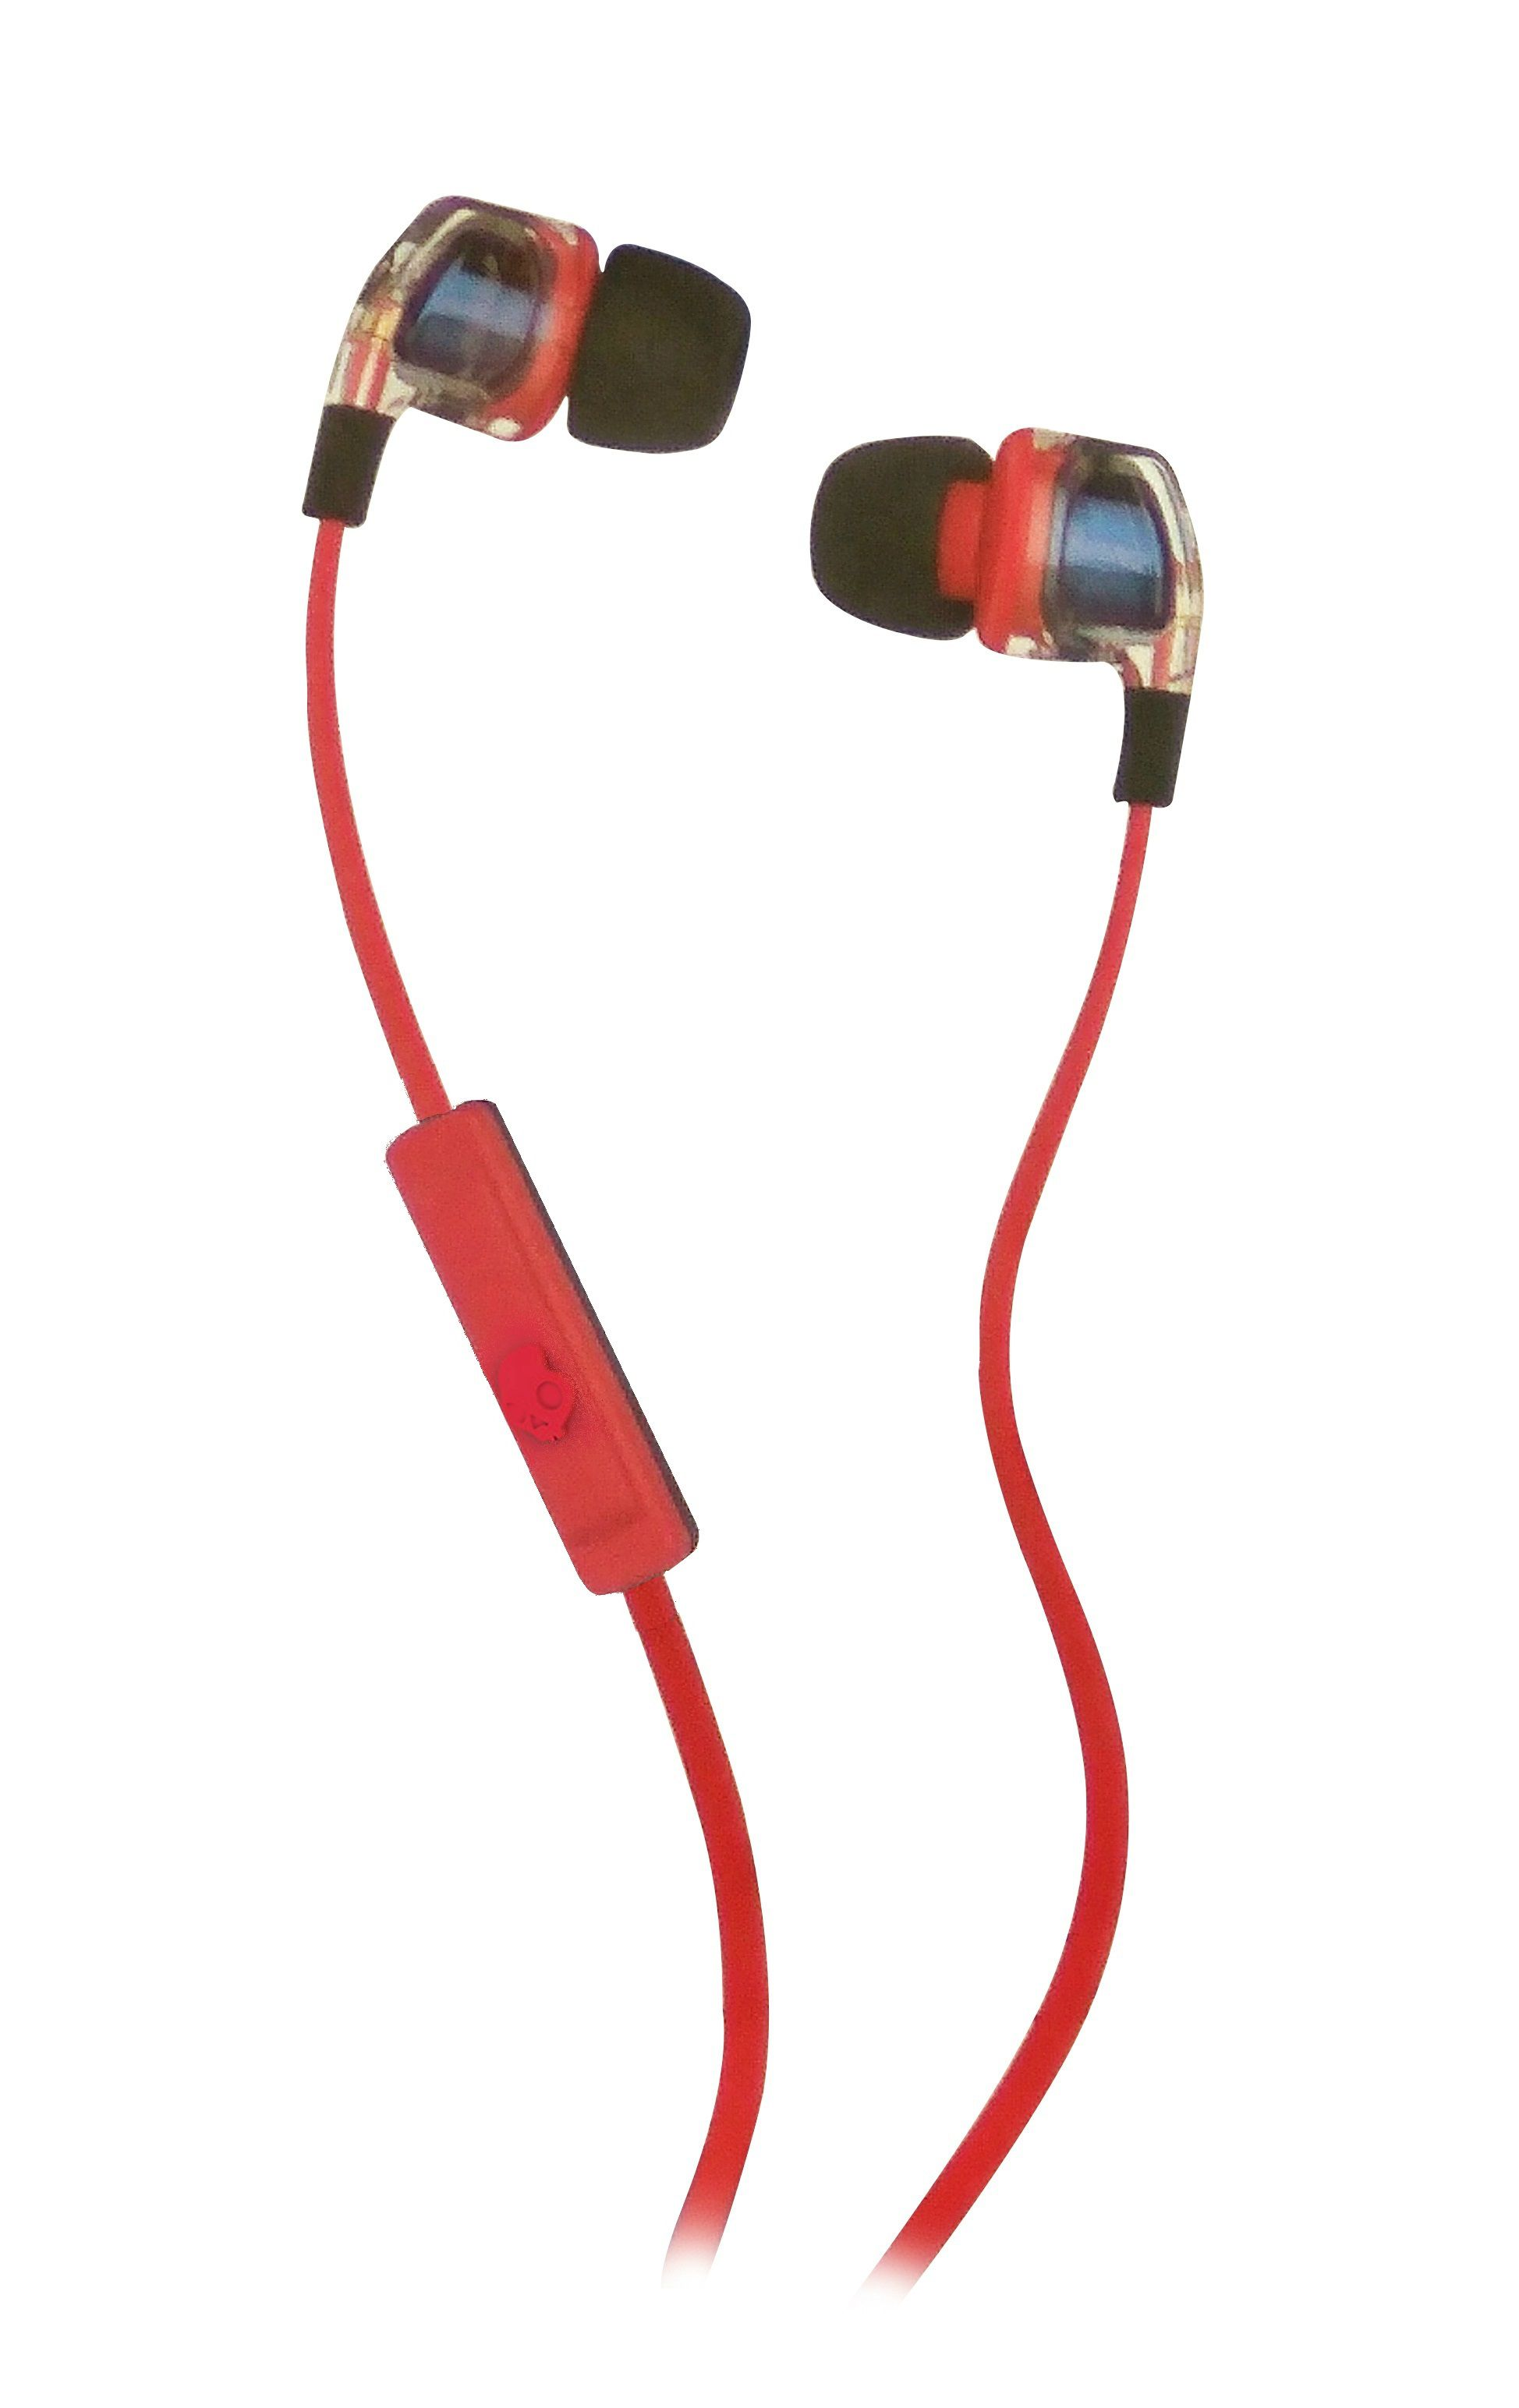 b1908d933ea Skullcandy Smokin Bud 2 S2PGGY-391 In Ear Earphones with Mic (Red and Blue)  With Mic - Buy Skullcandy Smokin Bud 2 S2PGGY-391 In Ear Earphones with Mic  (Red ...